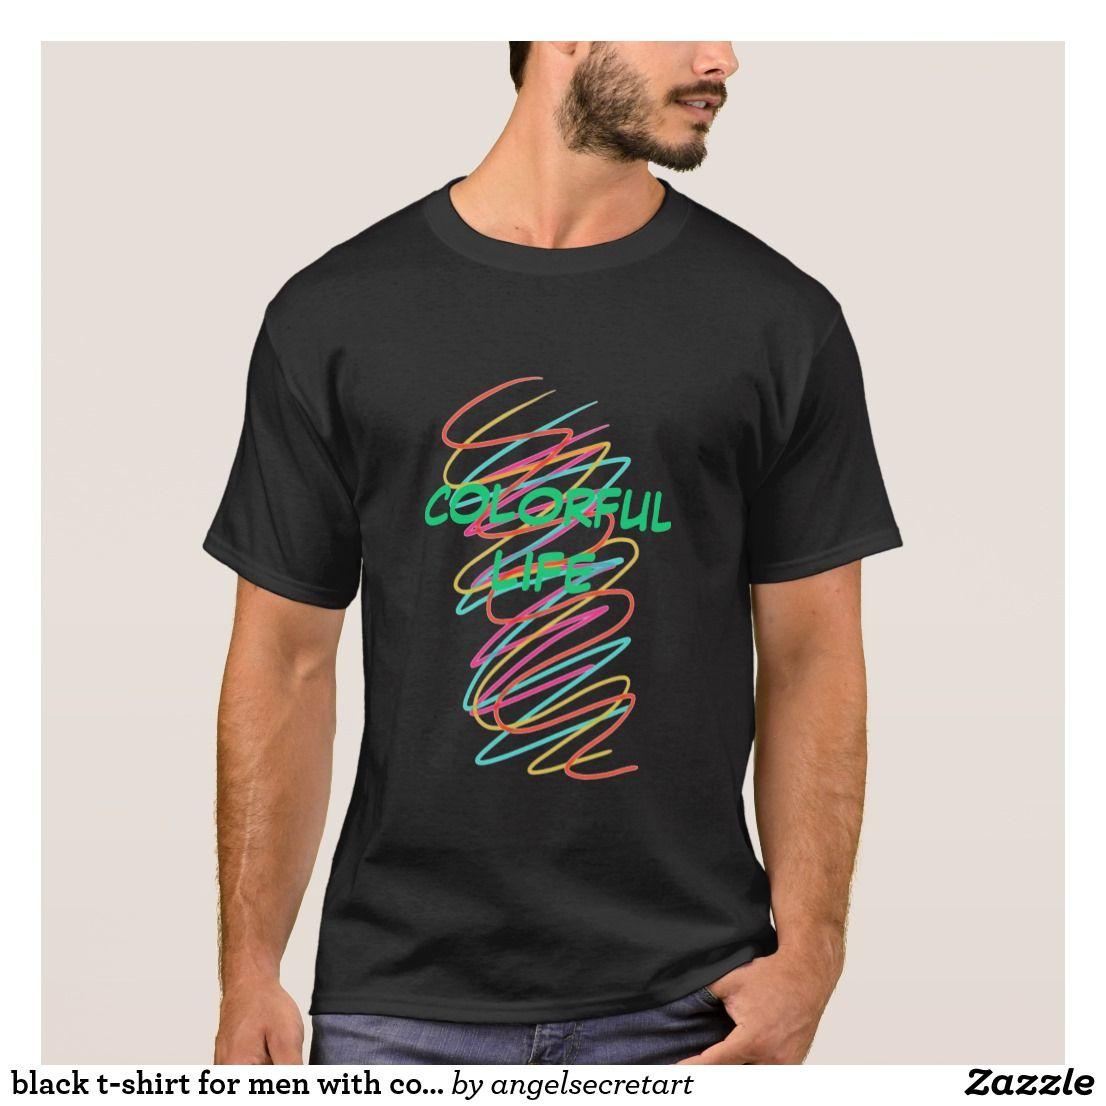 Zazzle t shirt design template - Black T Shirt For Men With Colorful Spiral Design